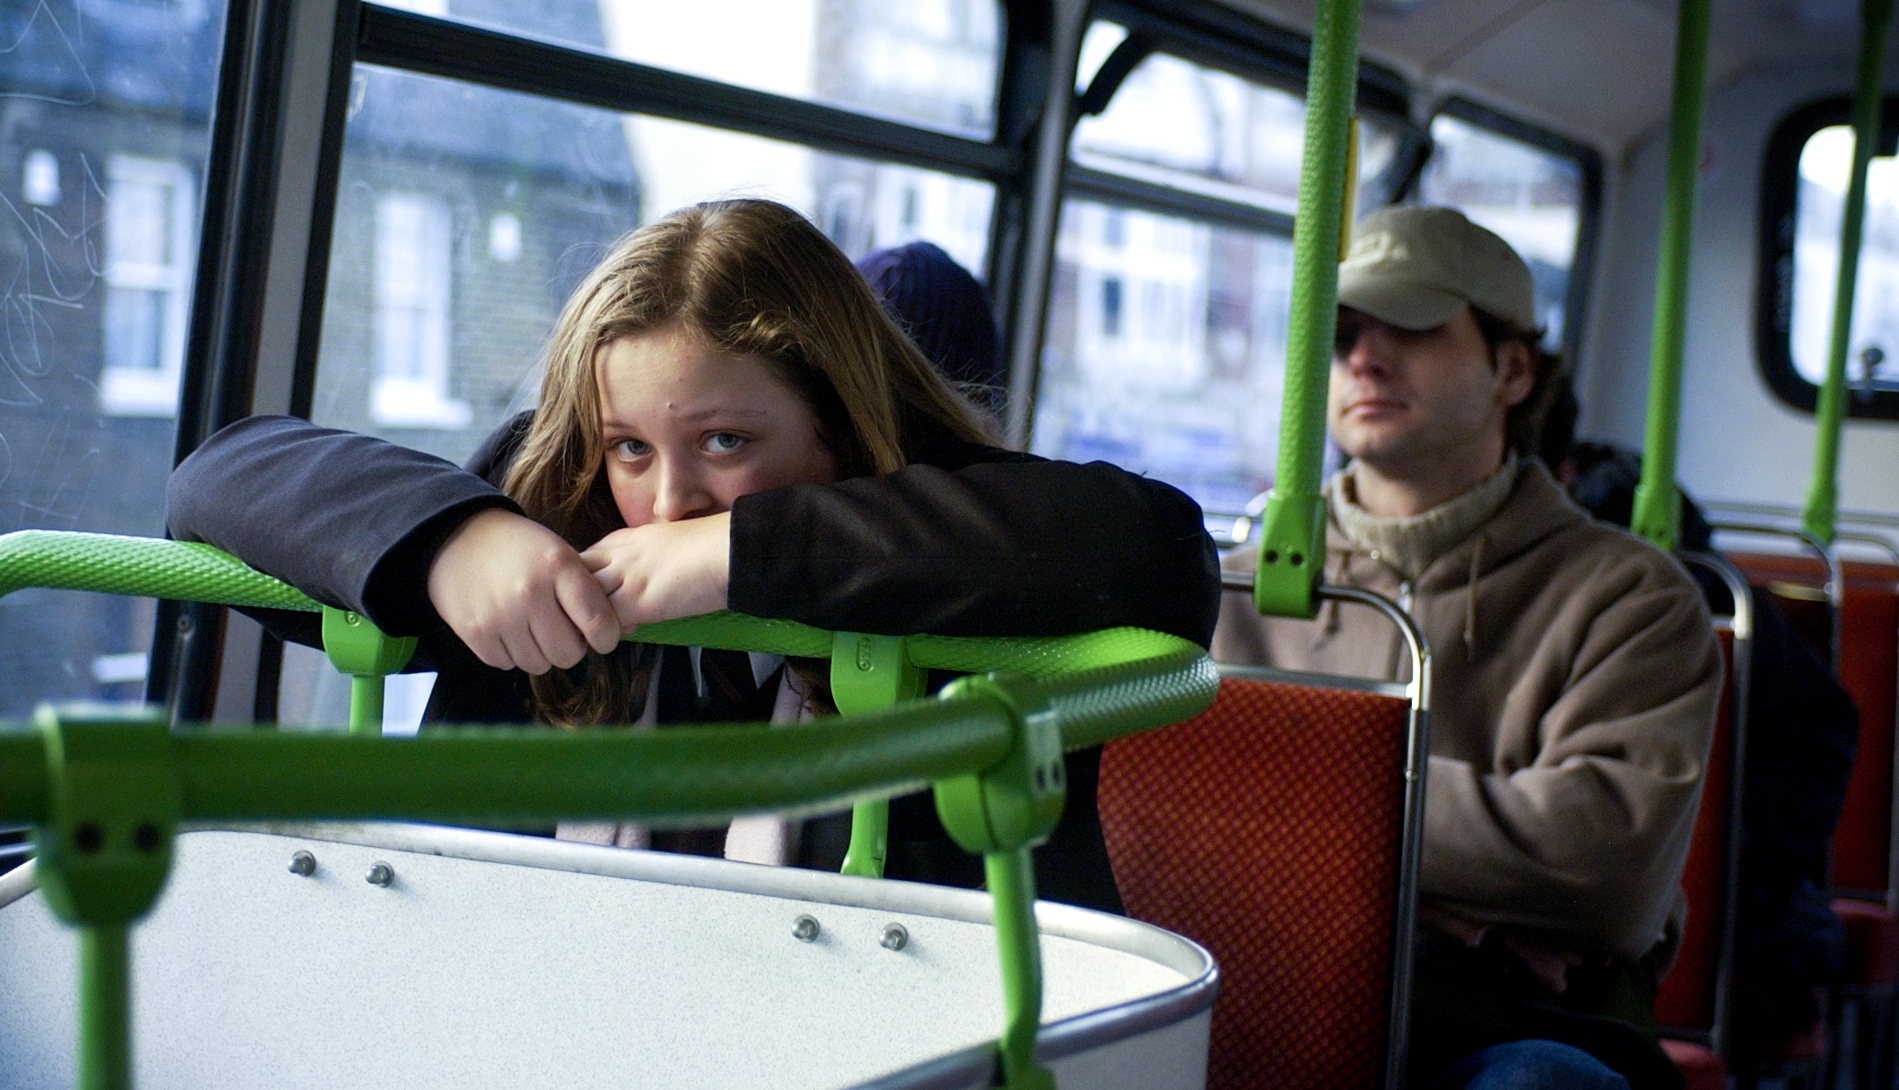 young girl on the bus